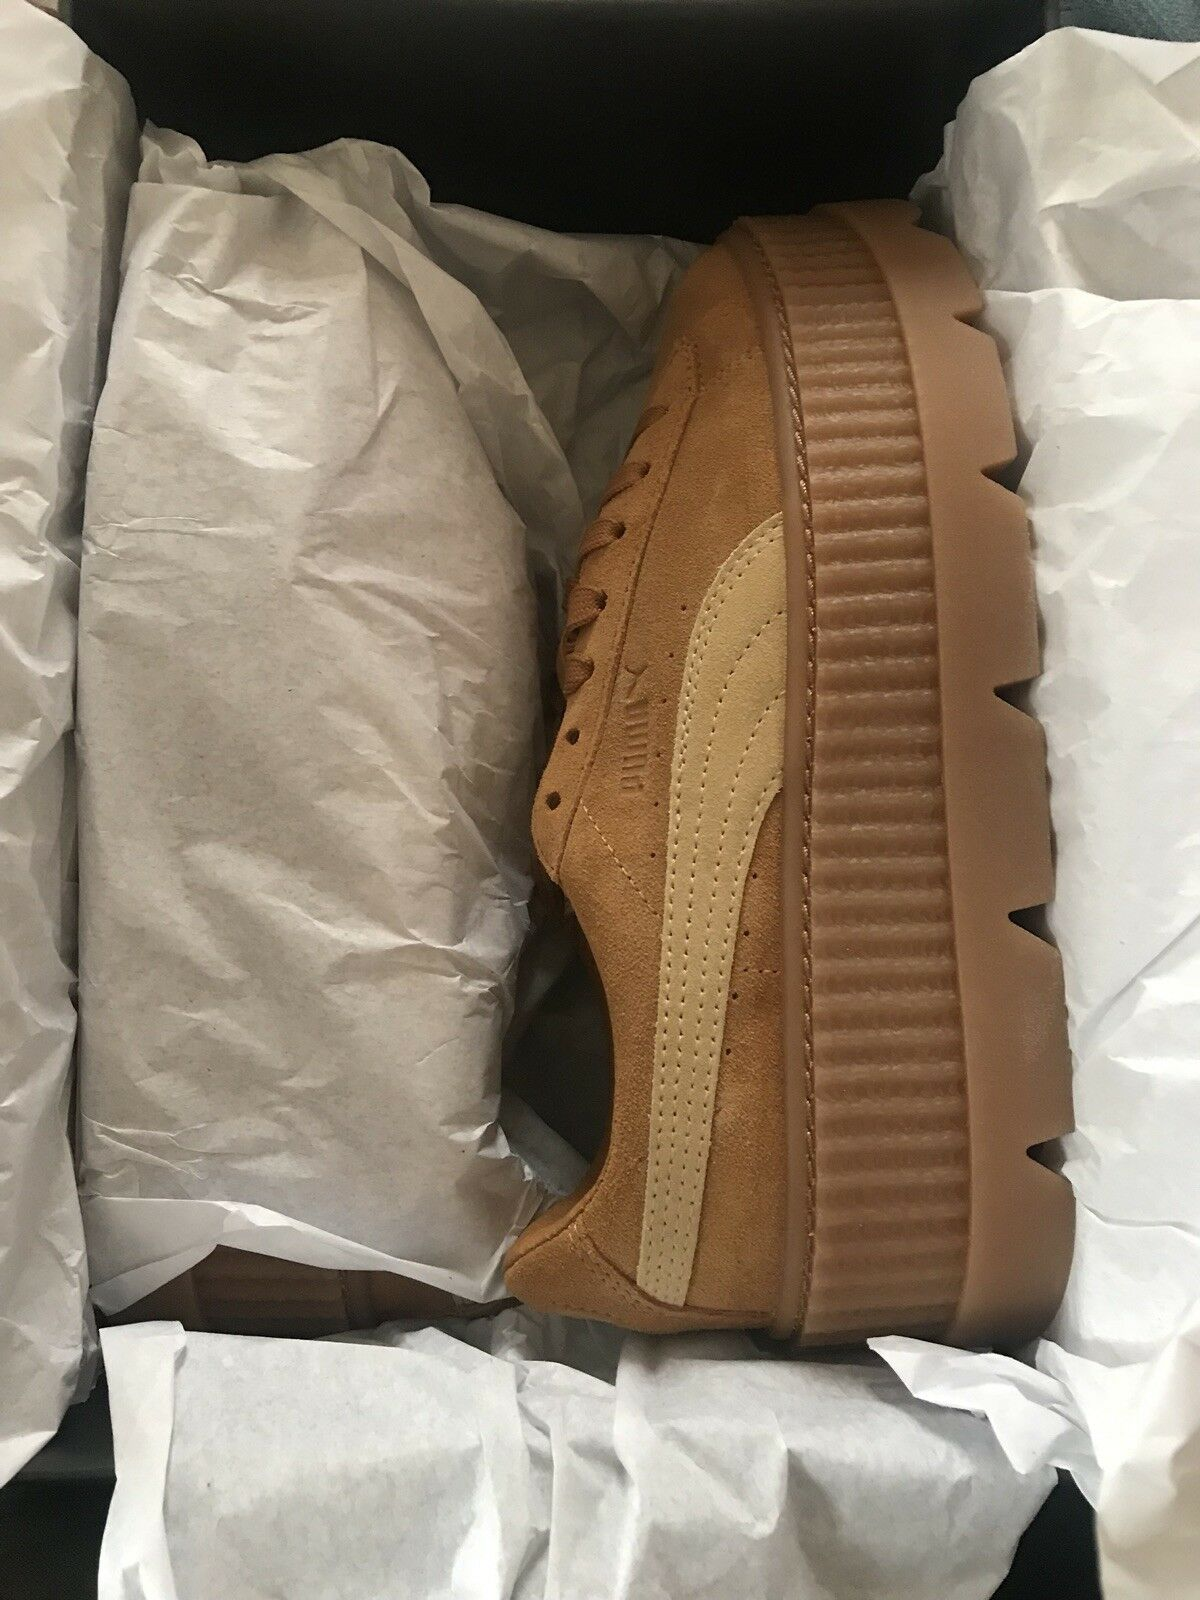 Fenty Puma- Cleated Creepers-Suede Tan Tan Tan golden Brown MSRP  160 31eed3